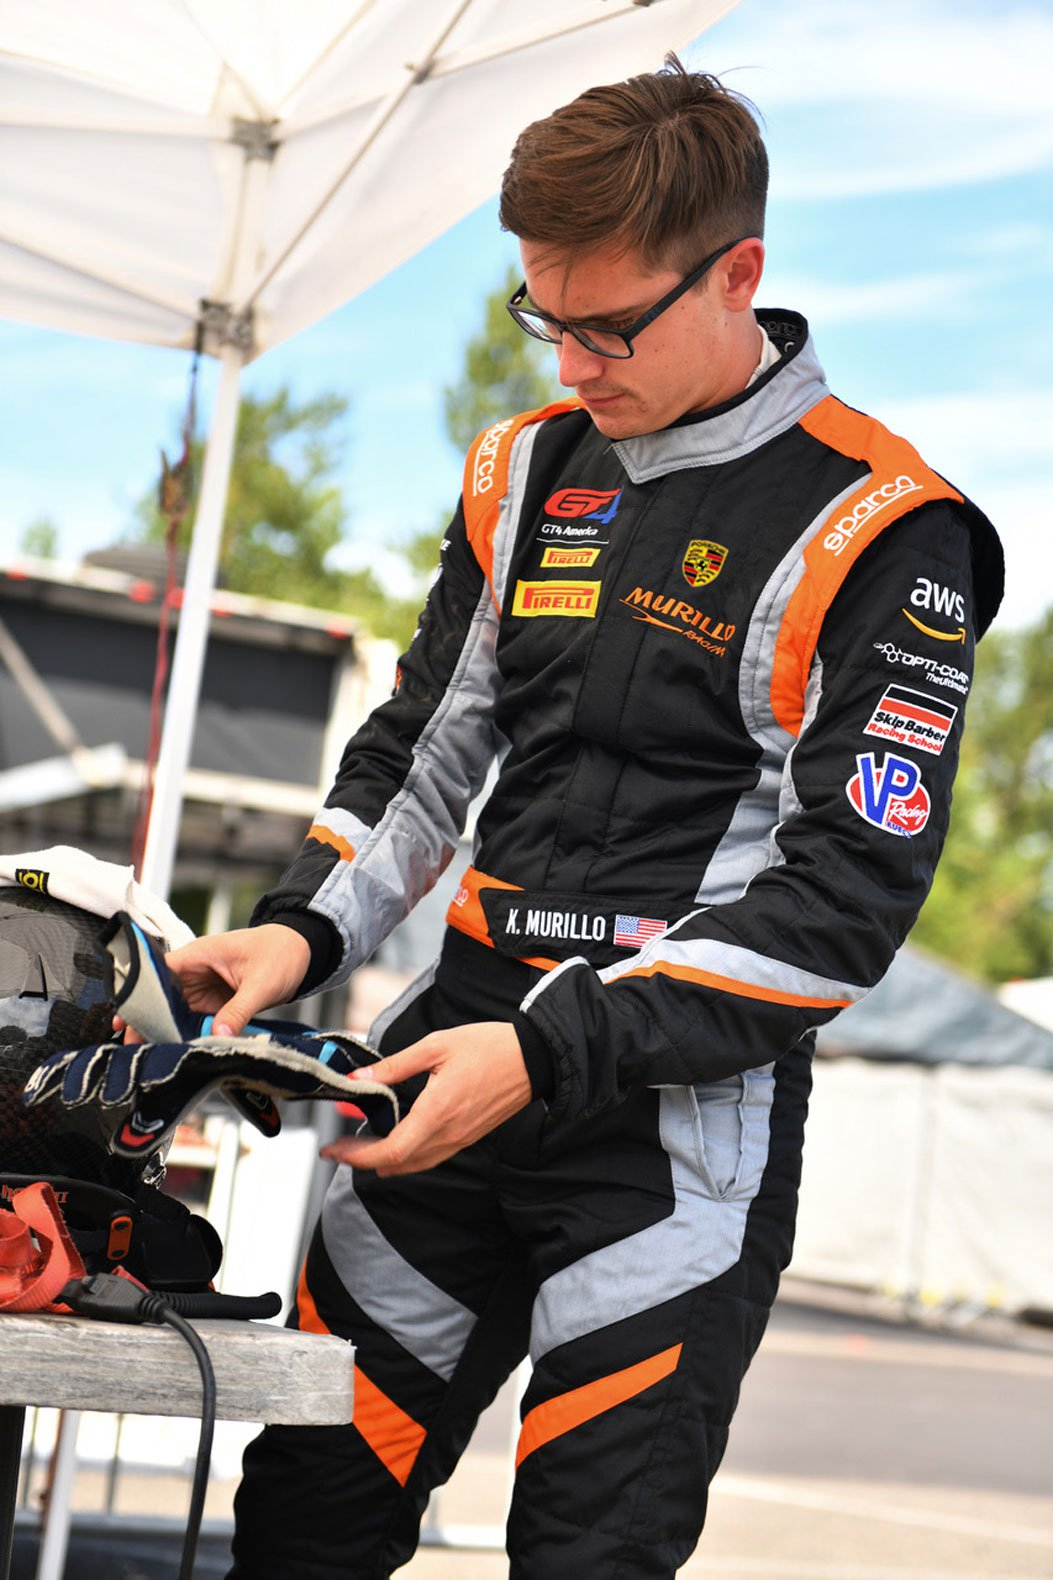 Kenny Murillo will be driving the Apex Capital Porsche